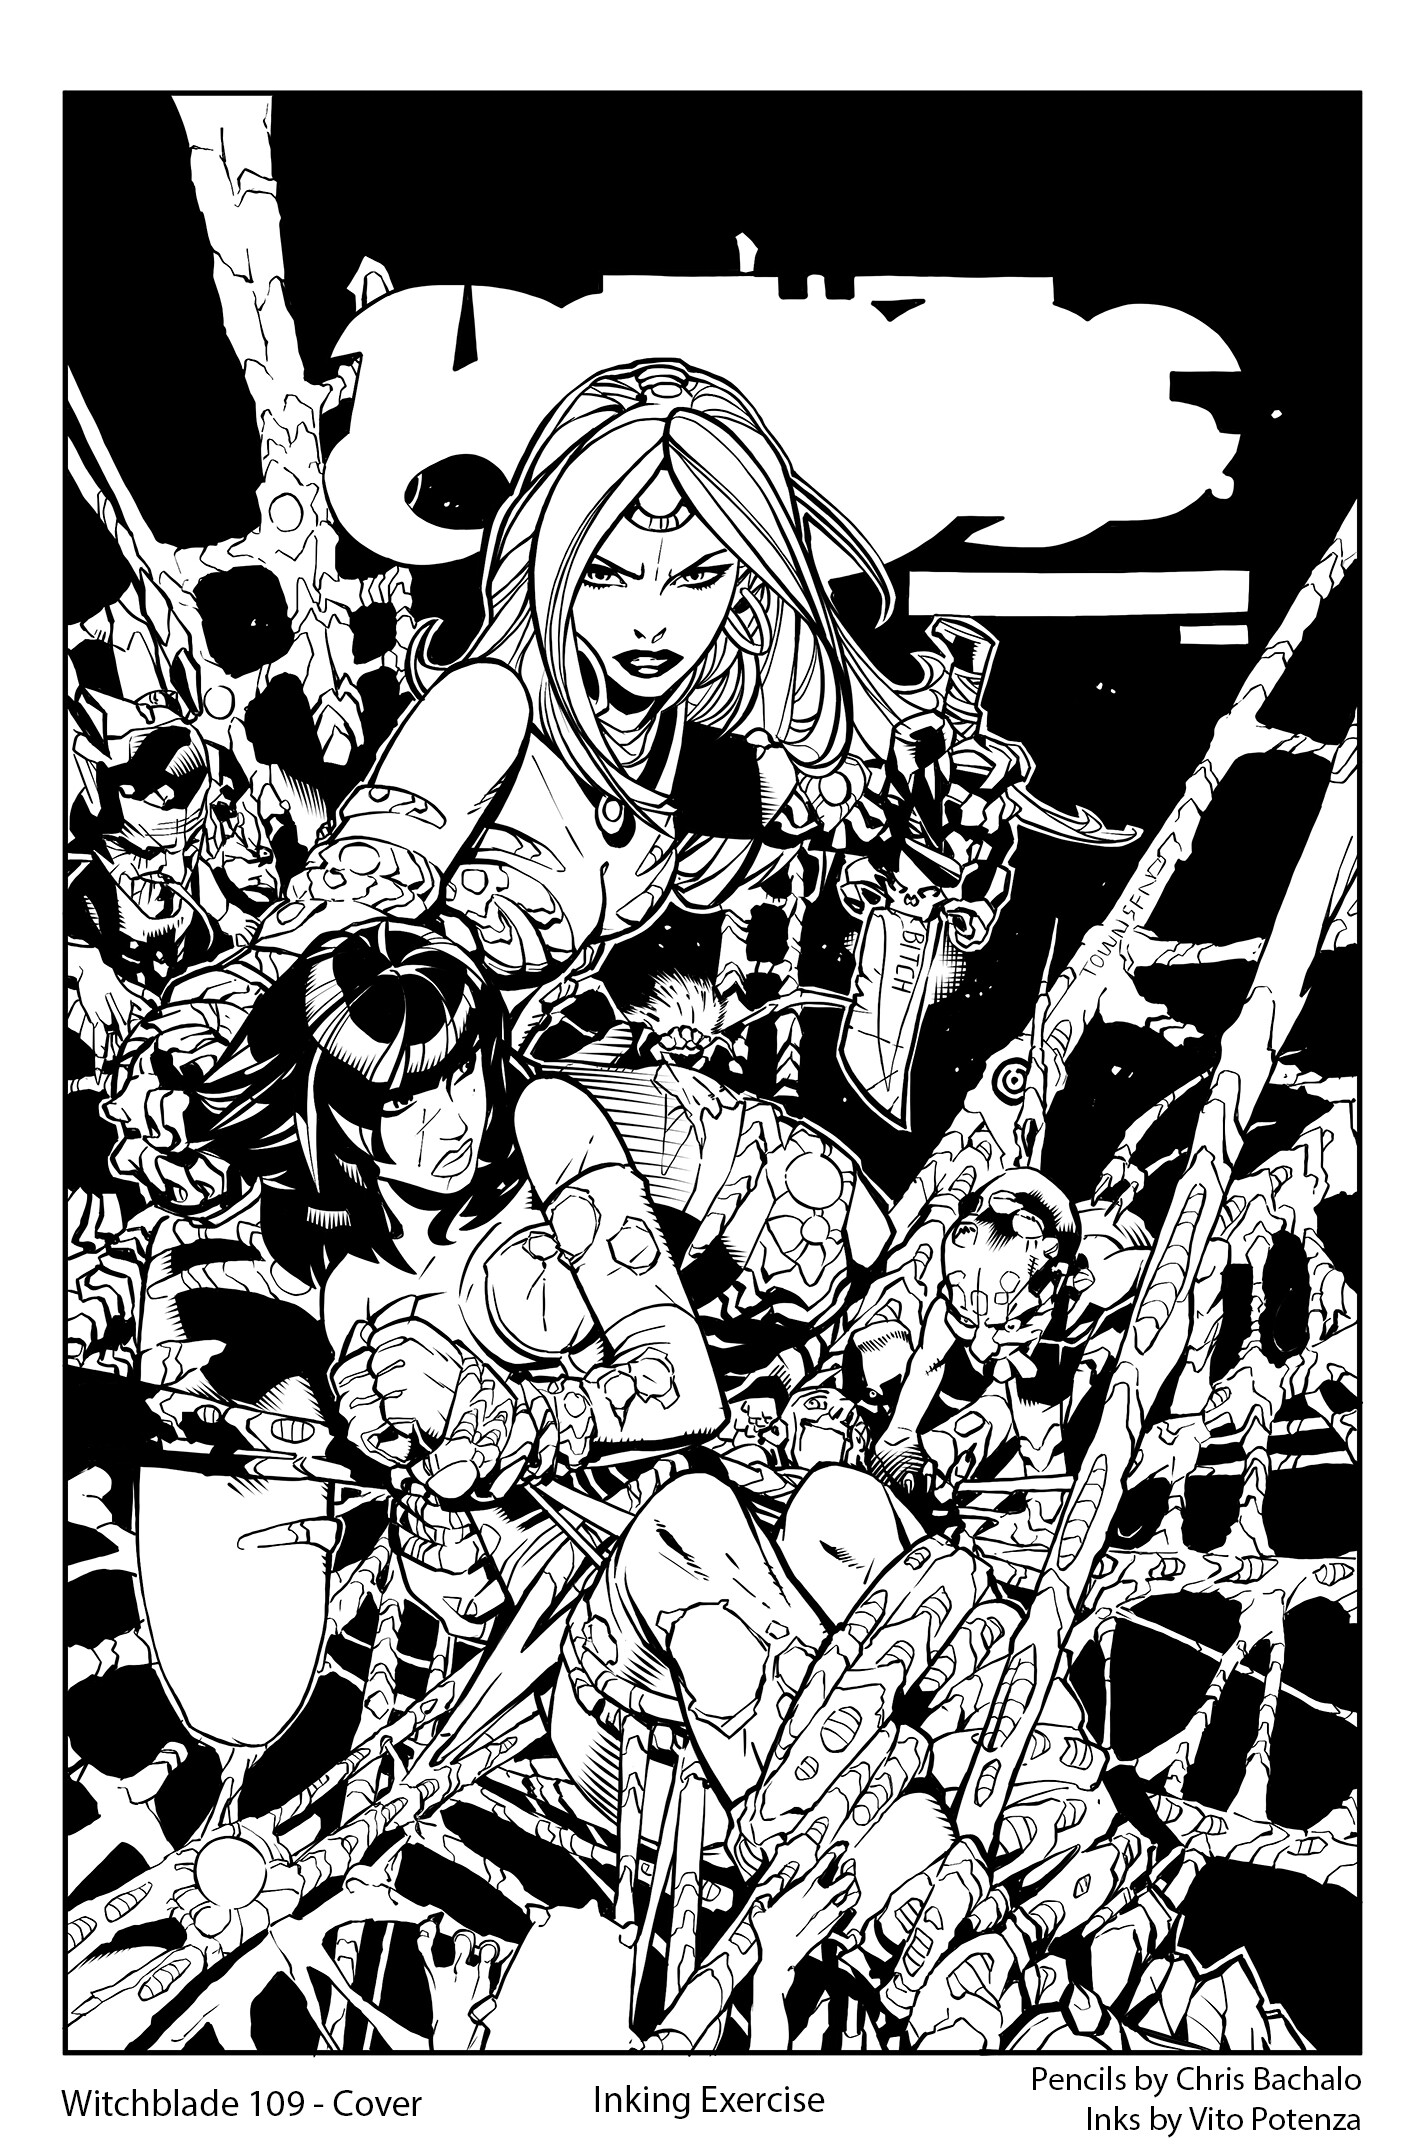 Witchblade #109 Cover – Inking Exercise